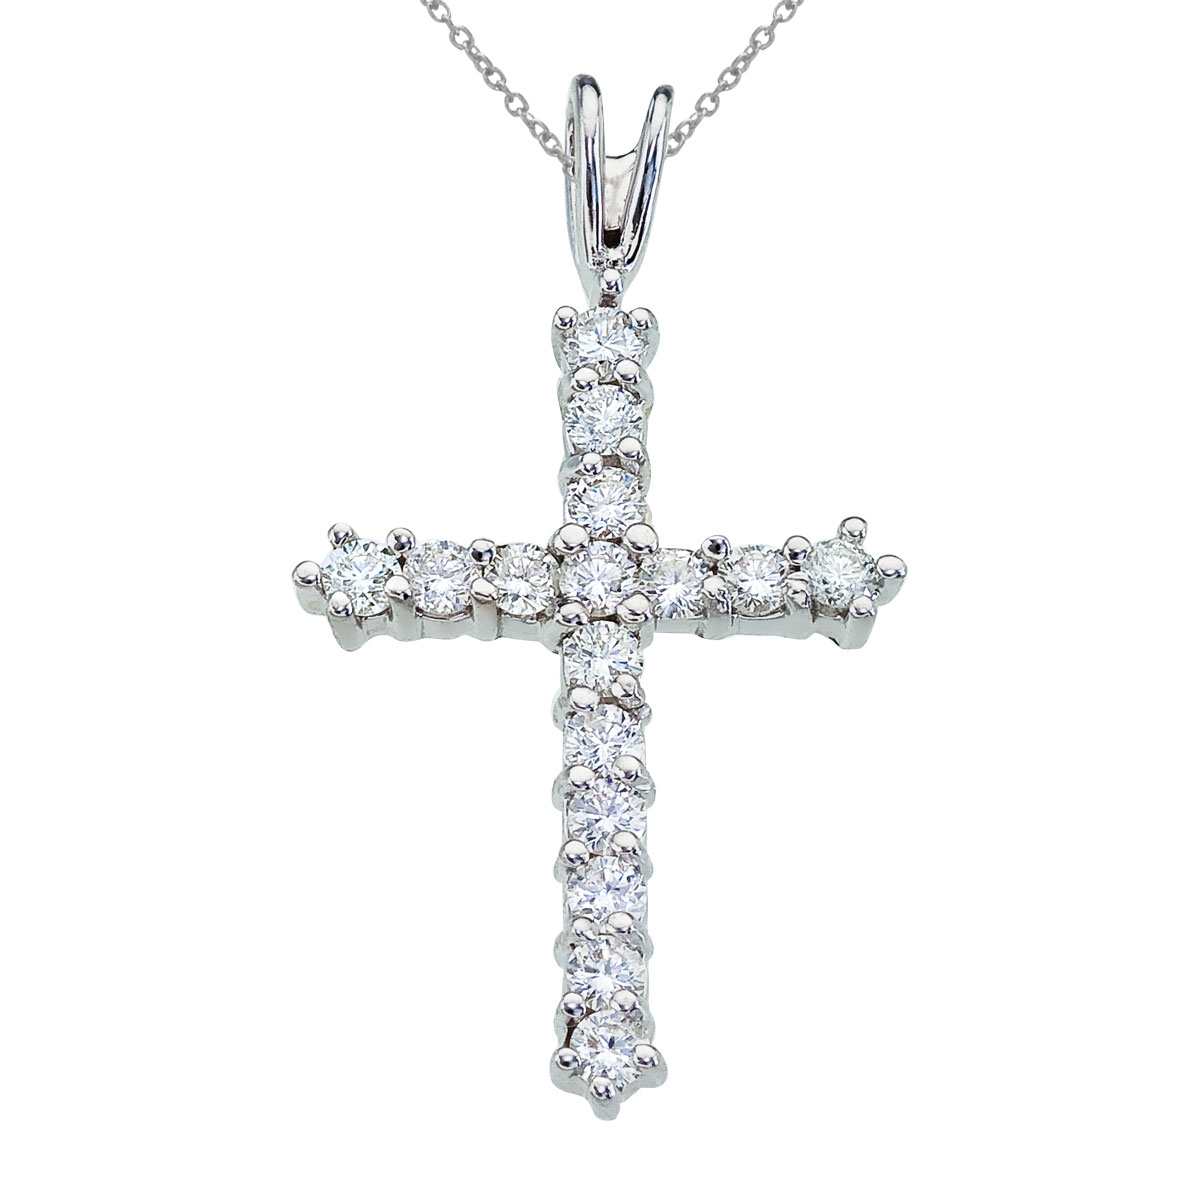 14k white gold cross with shimmering .50 total ct diamonds.